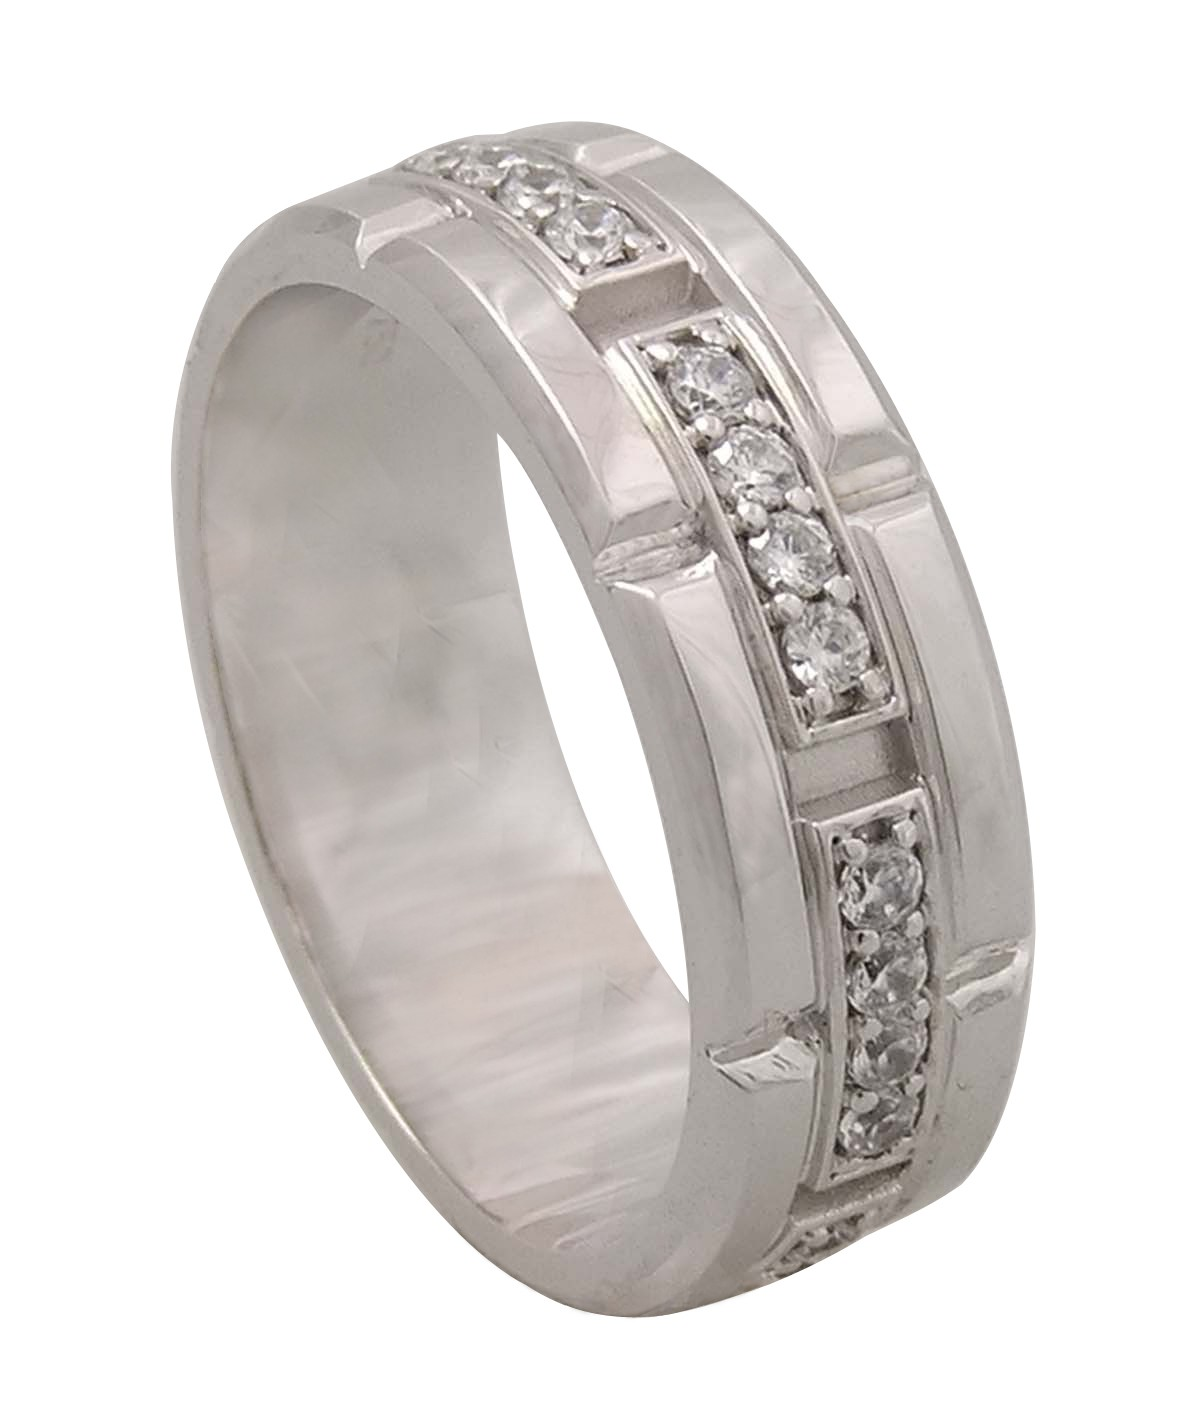 Hand Crafted Fine Jewellery Sydney Pave Set Diamond Gents Ring - Rings